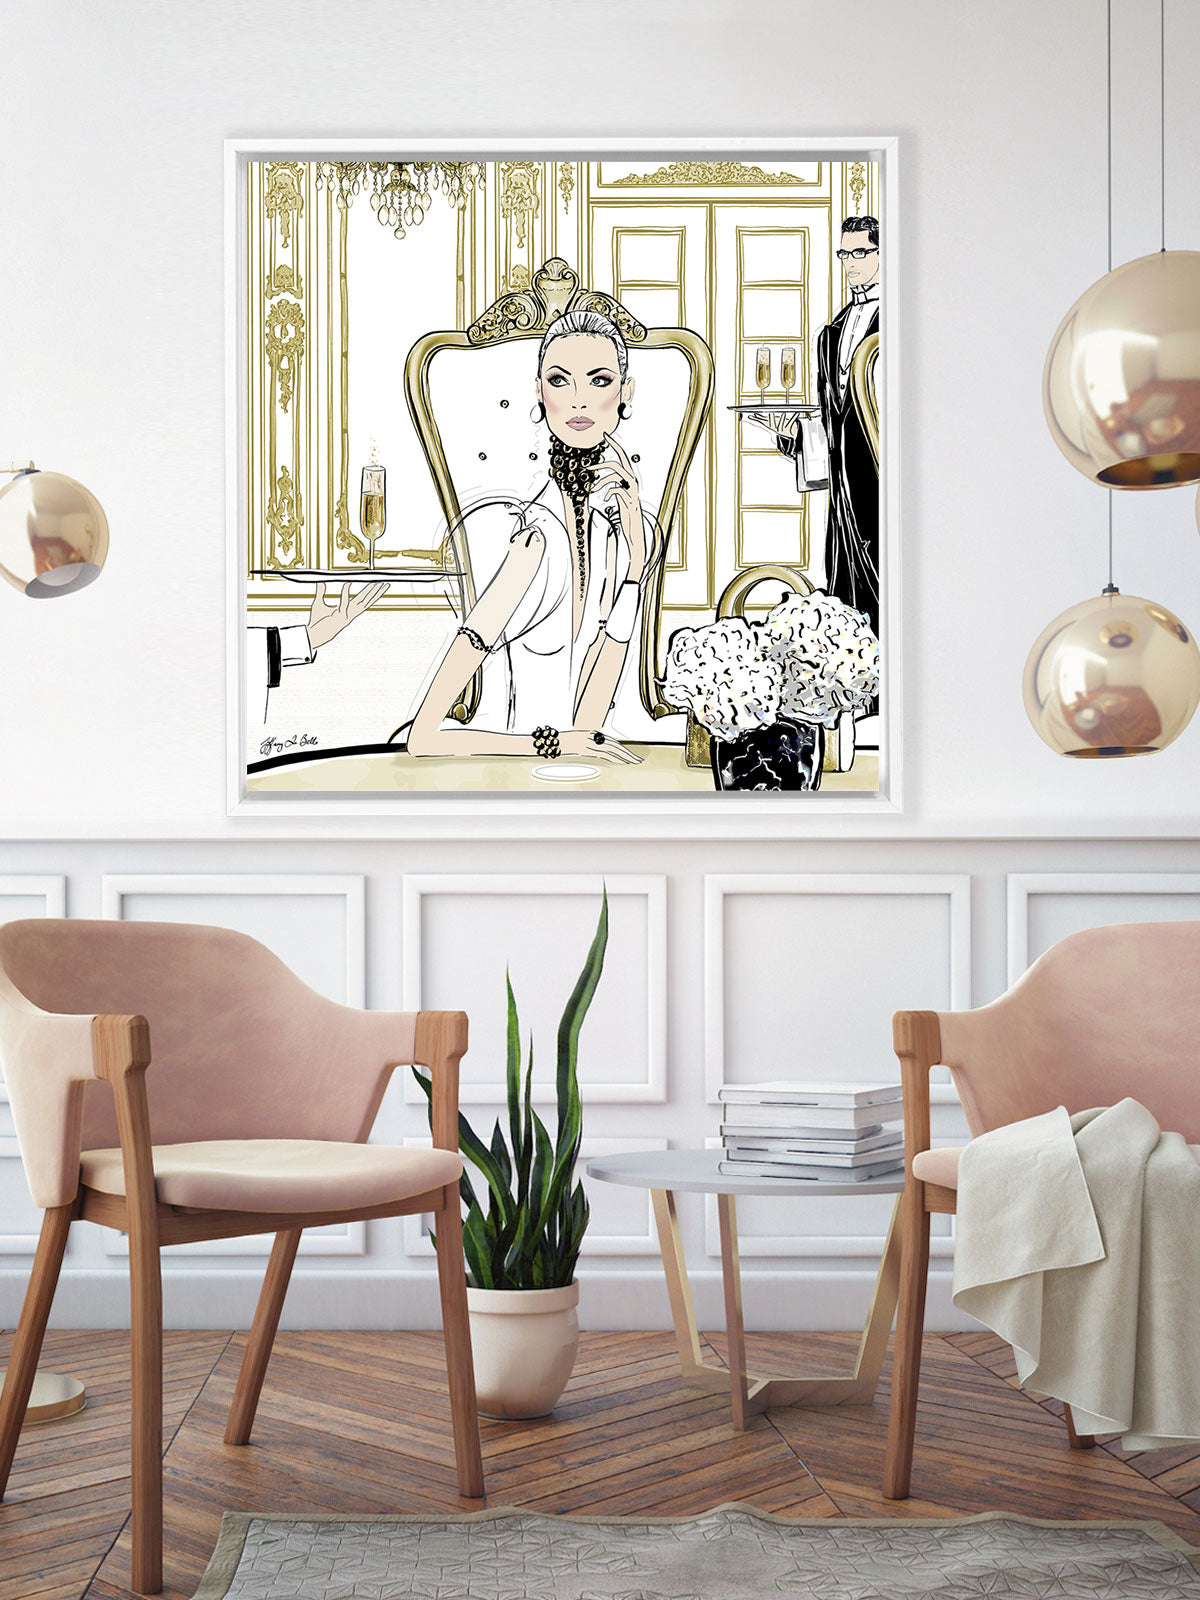 Champagne Dining - Illustration - Canvas Gallery Print - Unframed or Framed - Tiffany La Belle